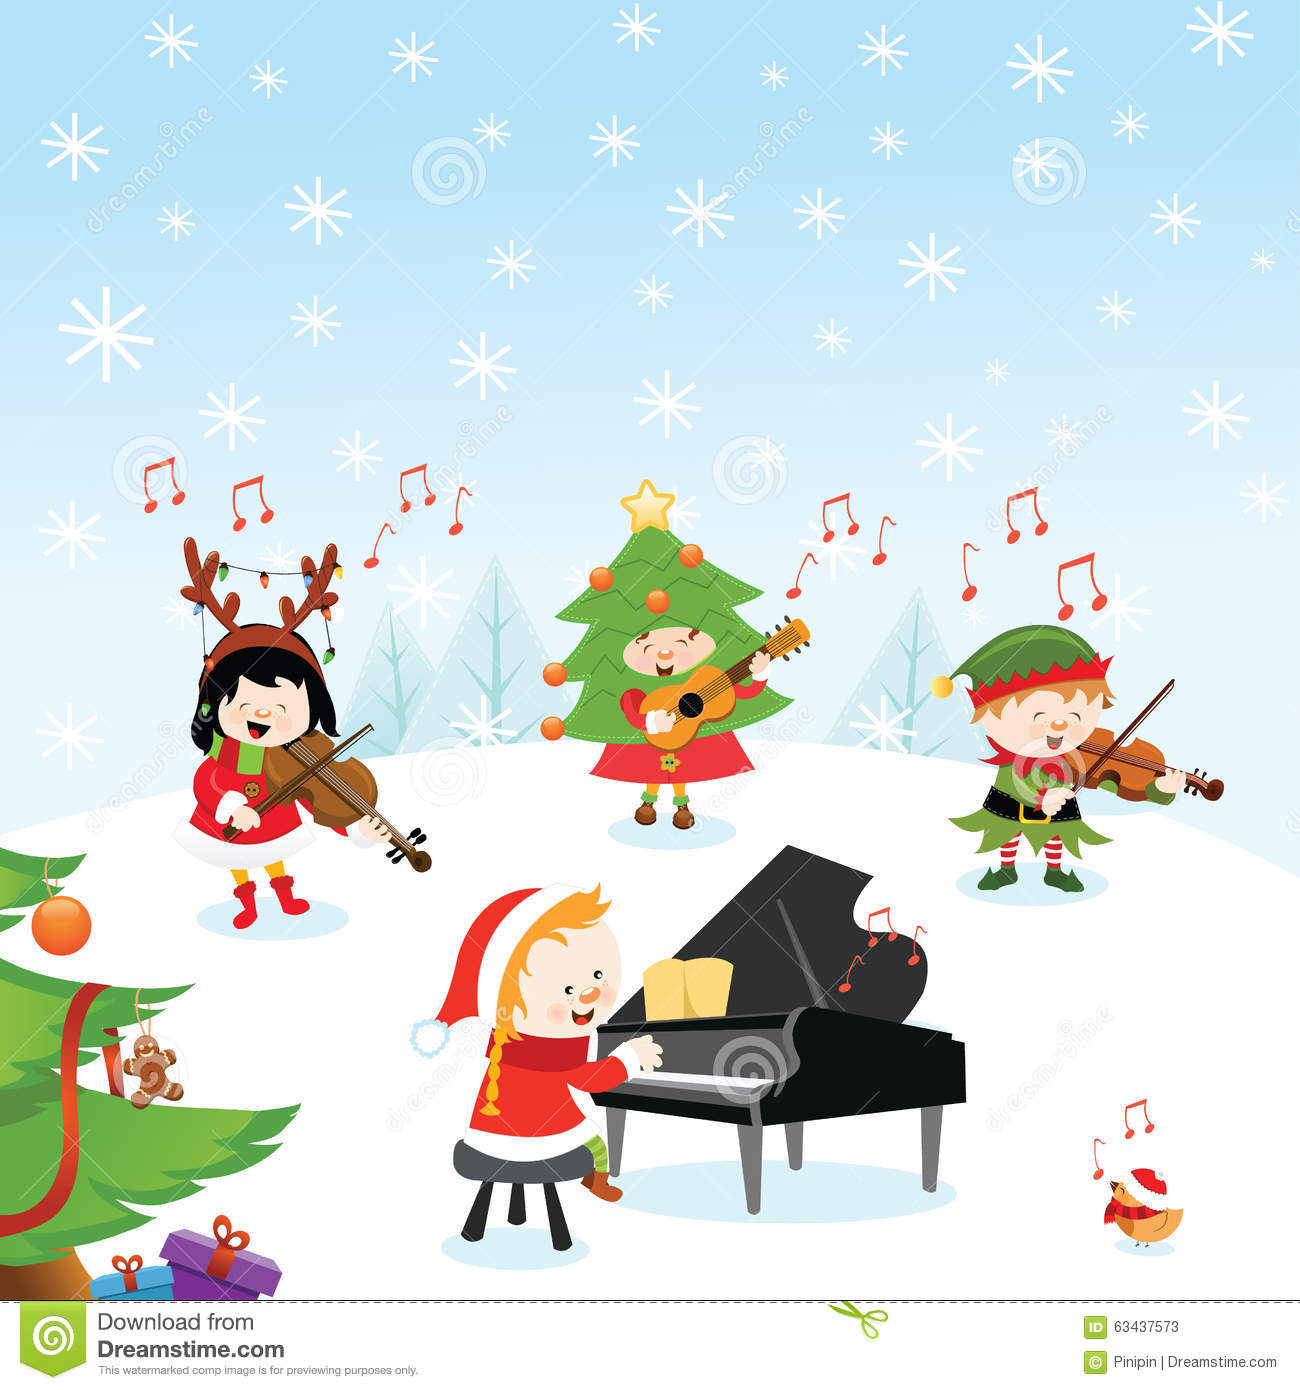 Christmas Music stock vector. Illustration of instruments - 63437573